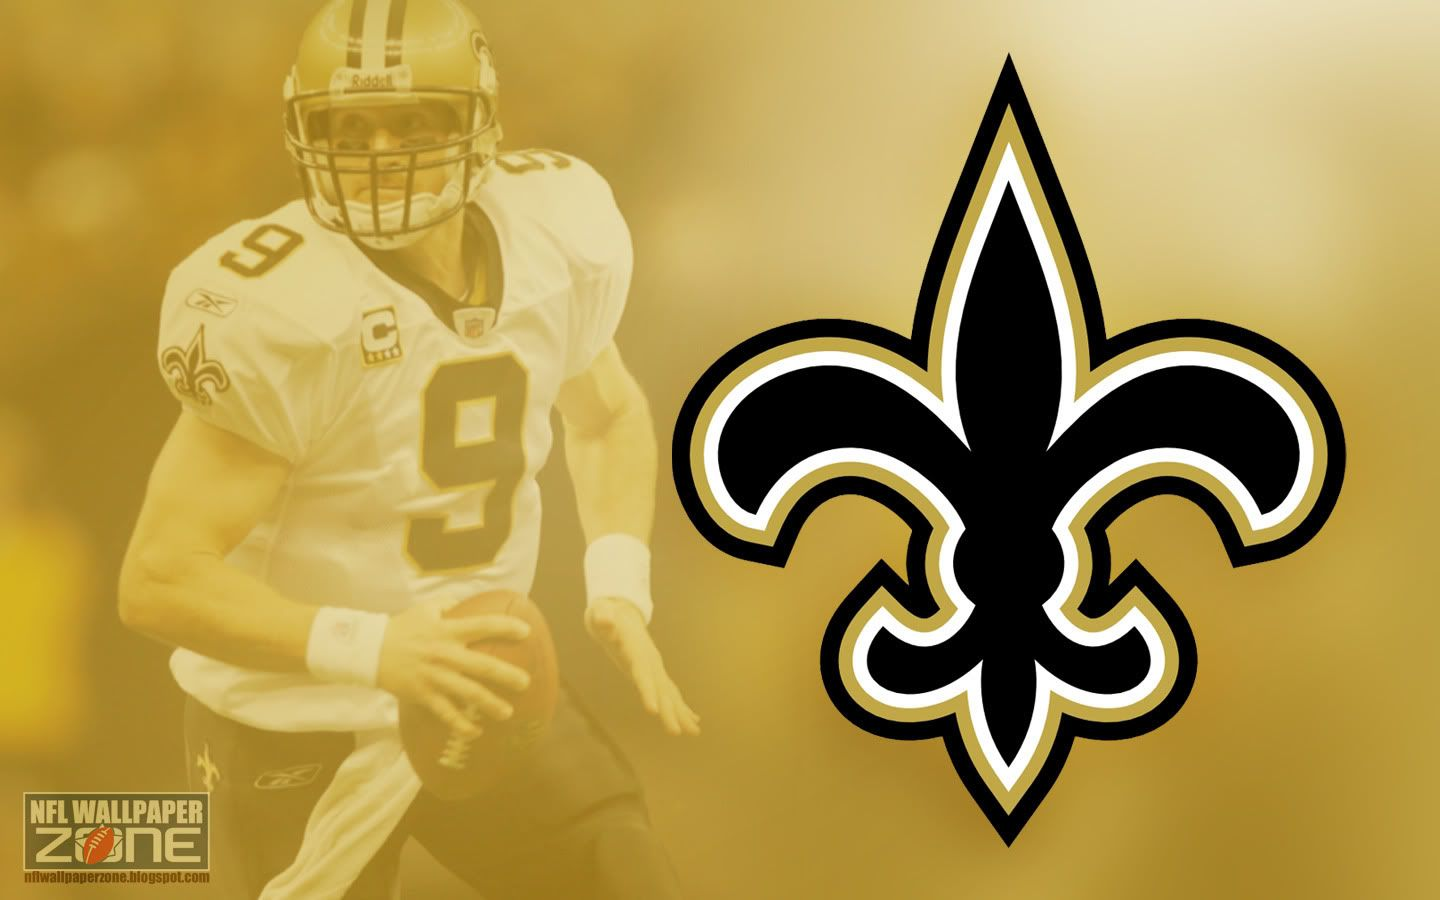 Nfl Wallpaper Zone New Orleans Saints Wallpaper Free Saints